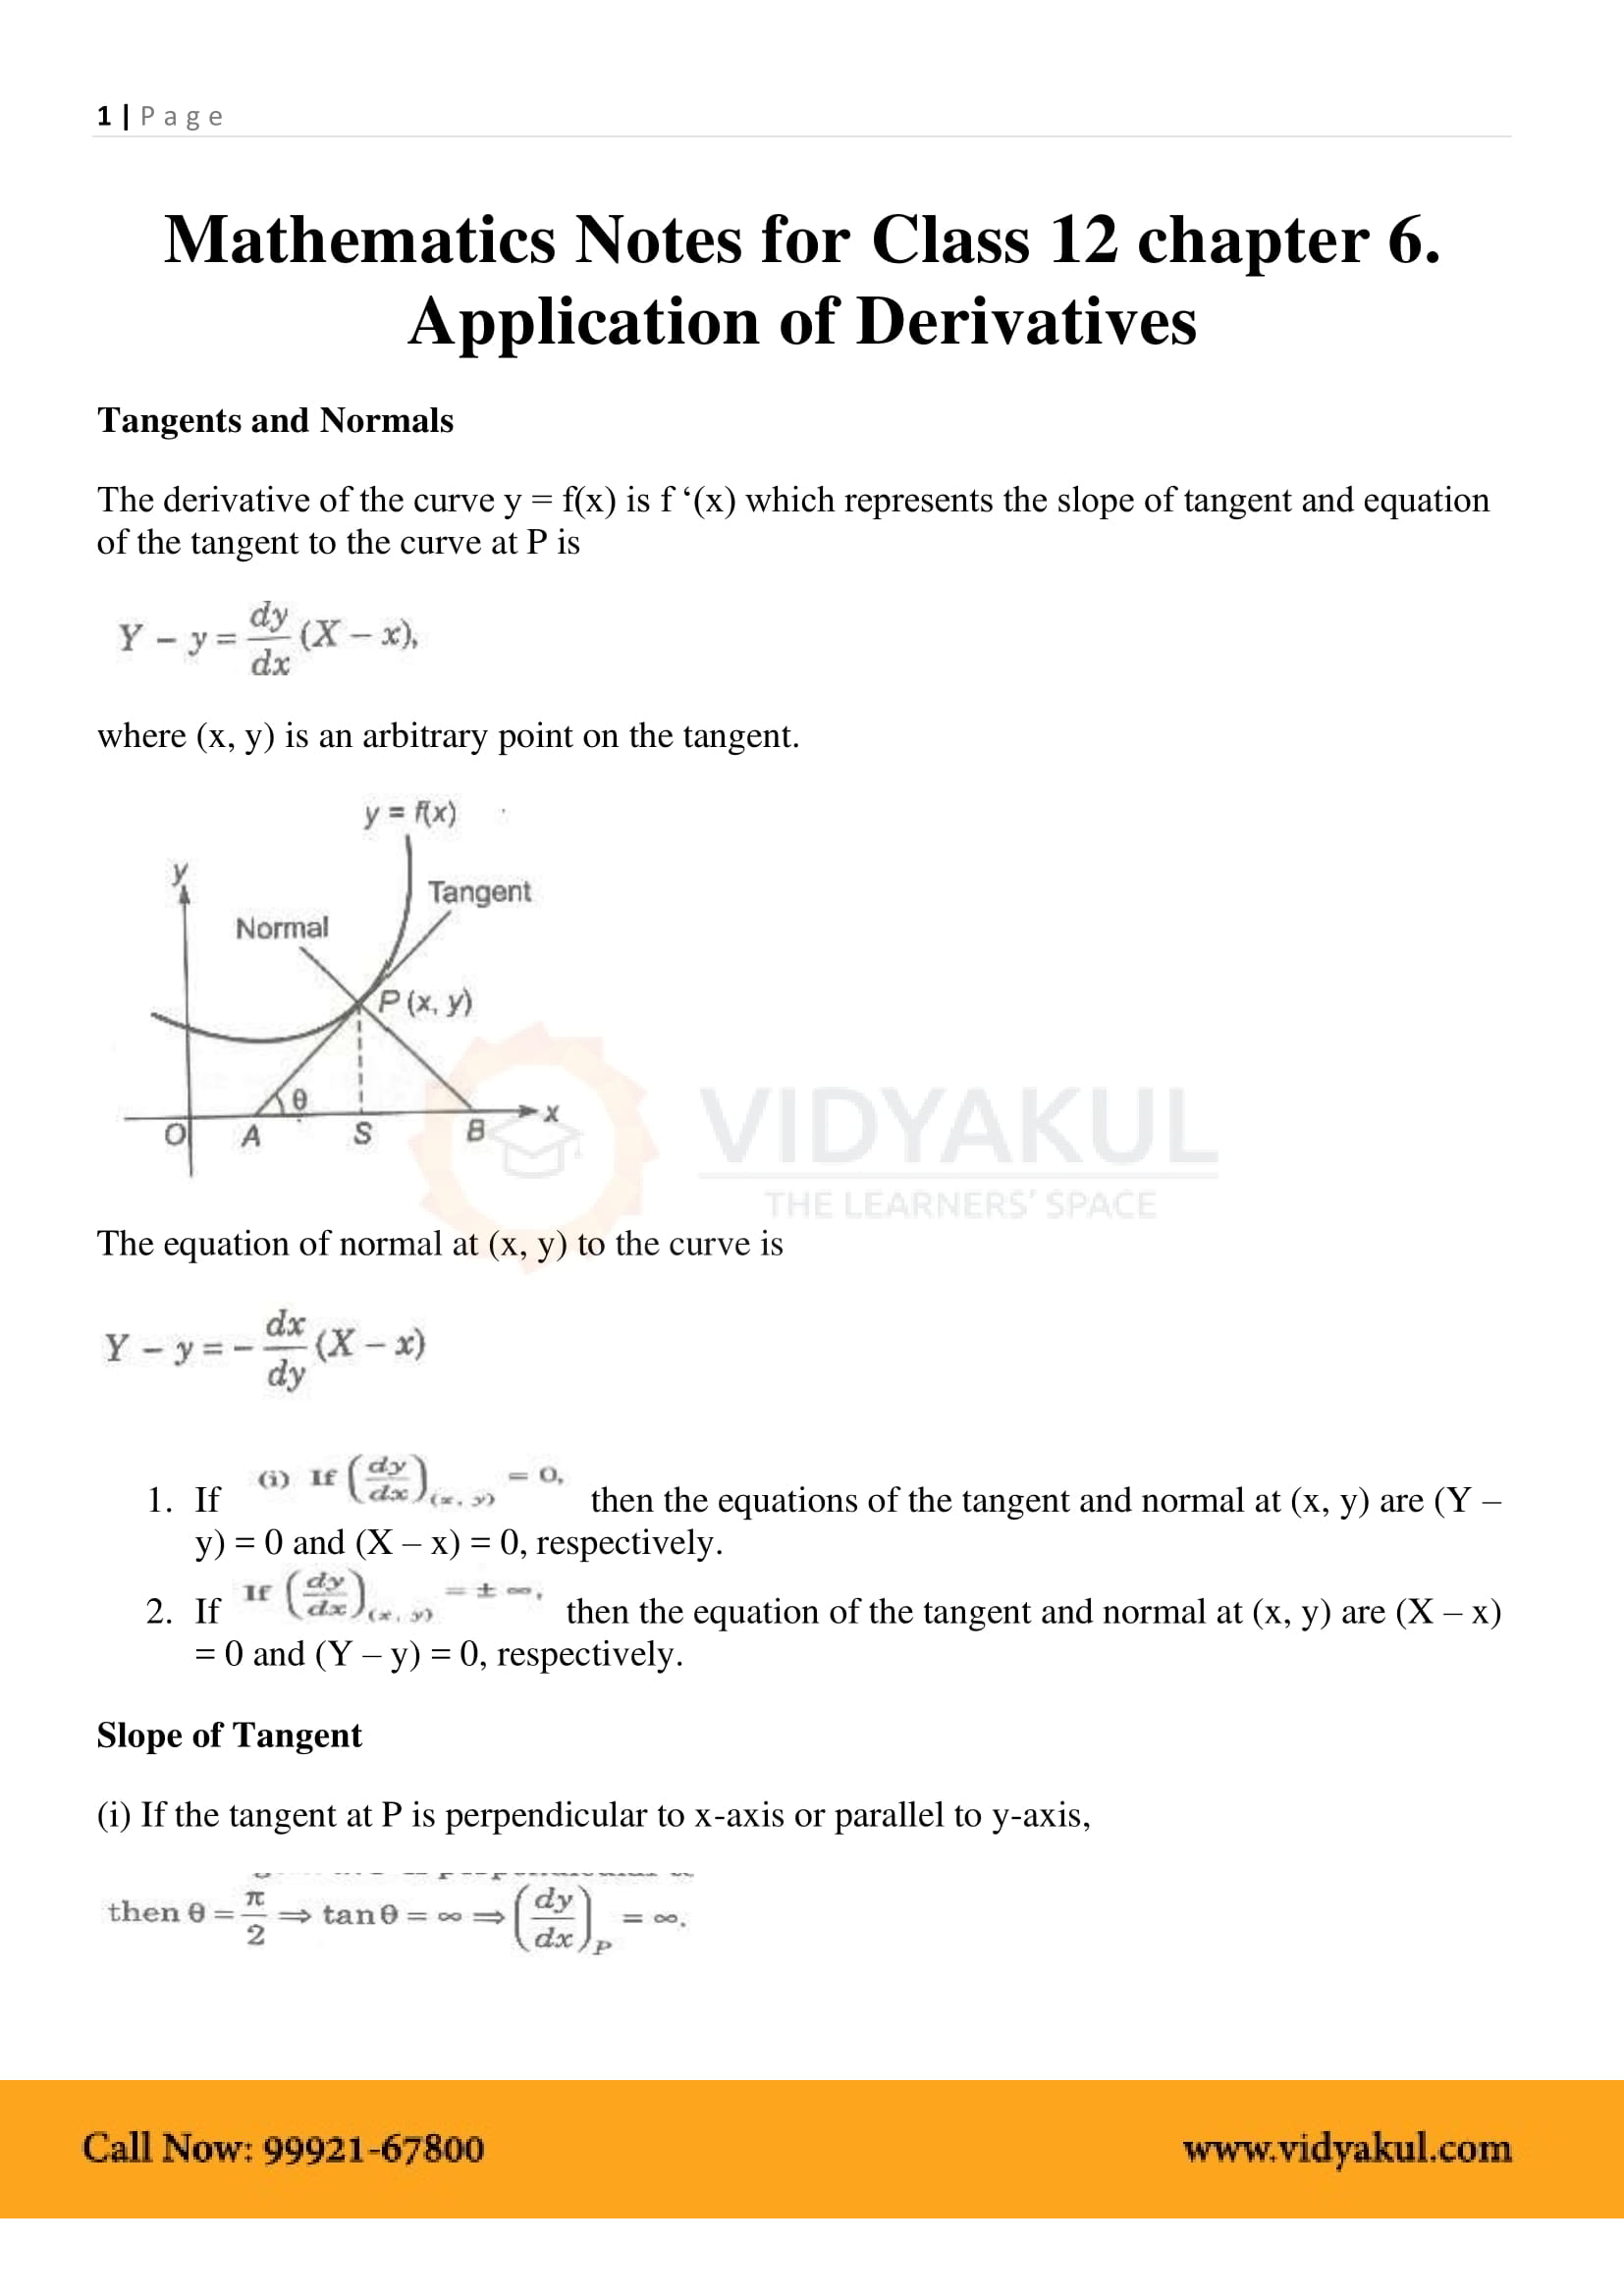 application of derivatives tangent and normal pdf